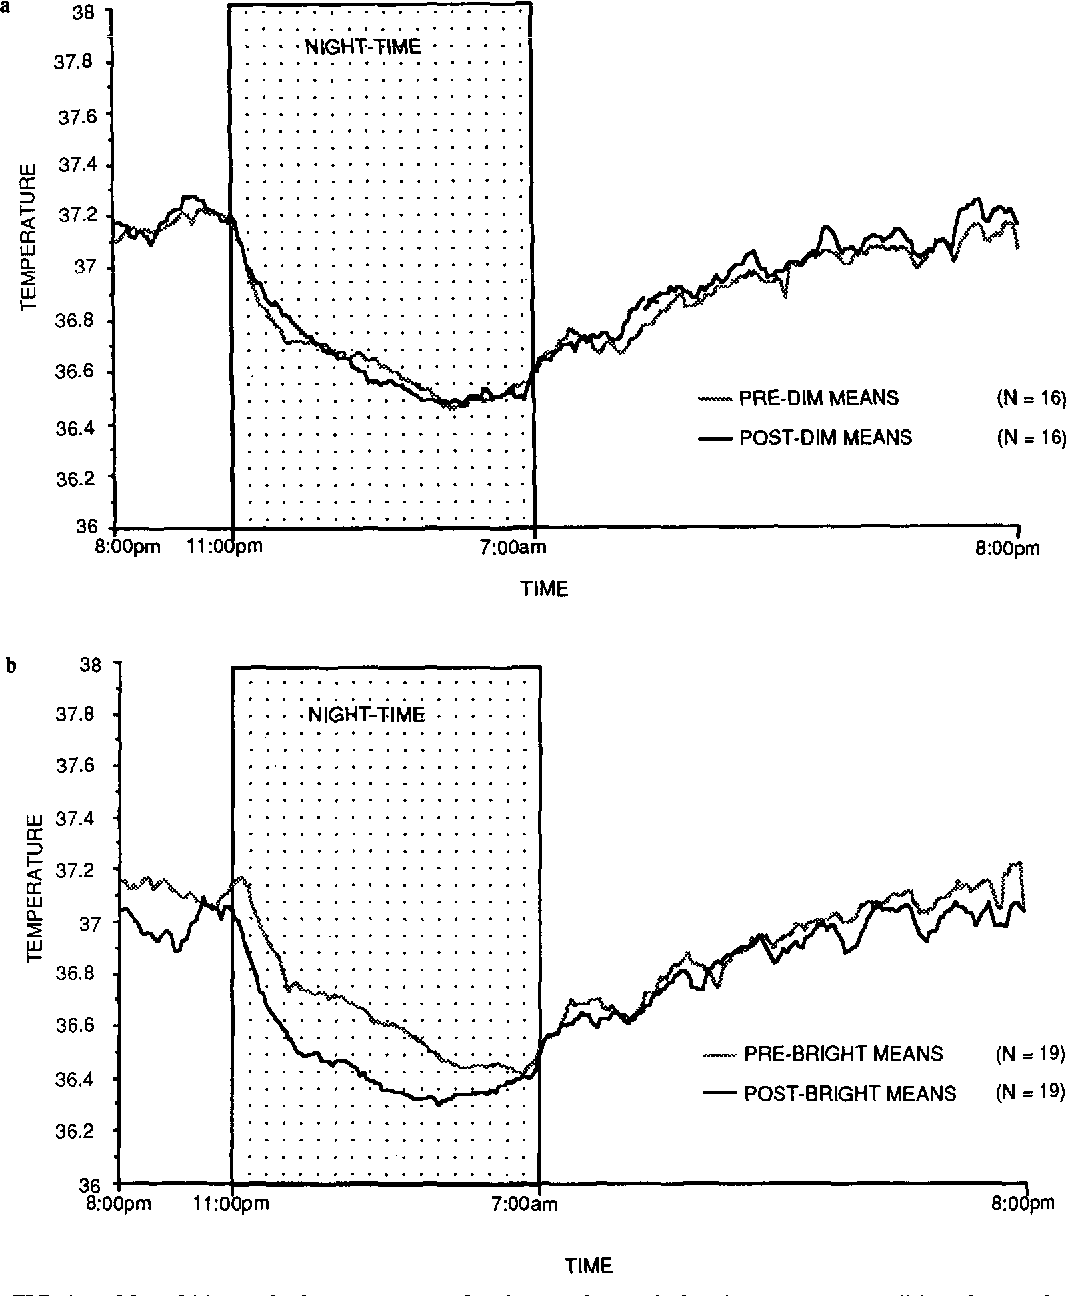 """FIG. 1. a: Mean 24-h core body temperature of patients before and after the """"control"""" condition. Core body temperature was measured every 5 min using a Vitalog temperature monitor and a rectal thermistor over the 24-h period. No significant difference in the circadian temperature rhythm was found after the """"control"""" condition (F = 0.92, df = 1,287, p = 0.77). b: Mean 24-h core body temperature of patients before and after the """"active"""" condition. There was a significant difference in the circadian temperature after the """"active condition"""" (F = 2.39, df = 1,287, p ,,;;: O.OOl)."""